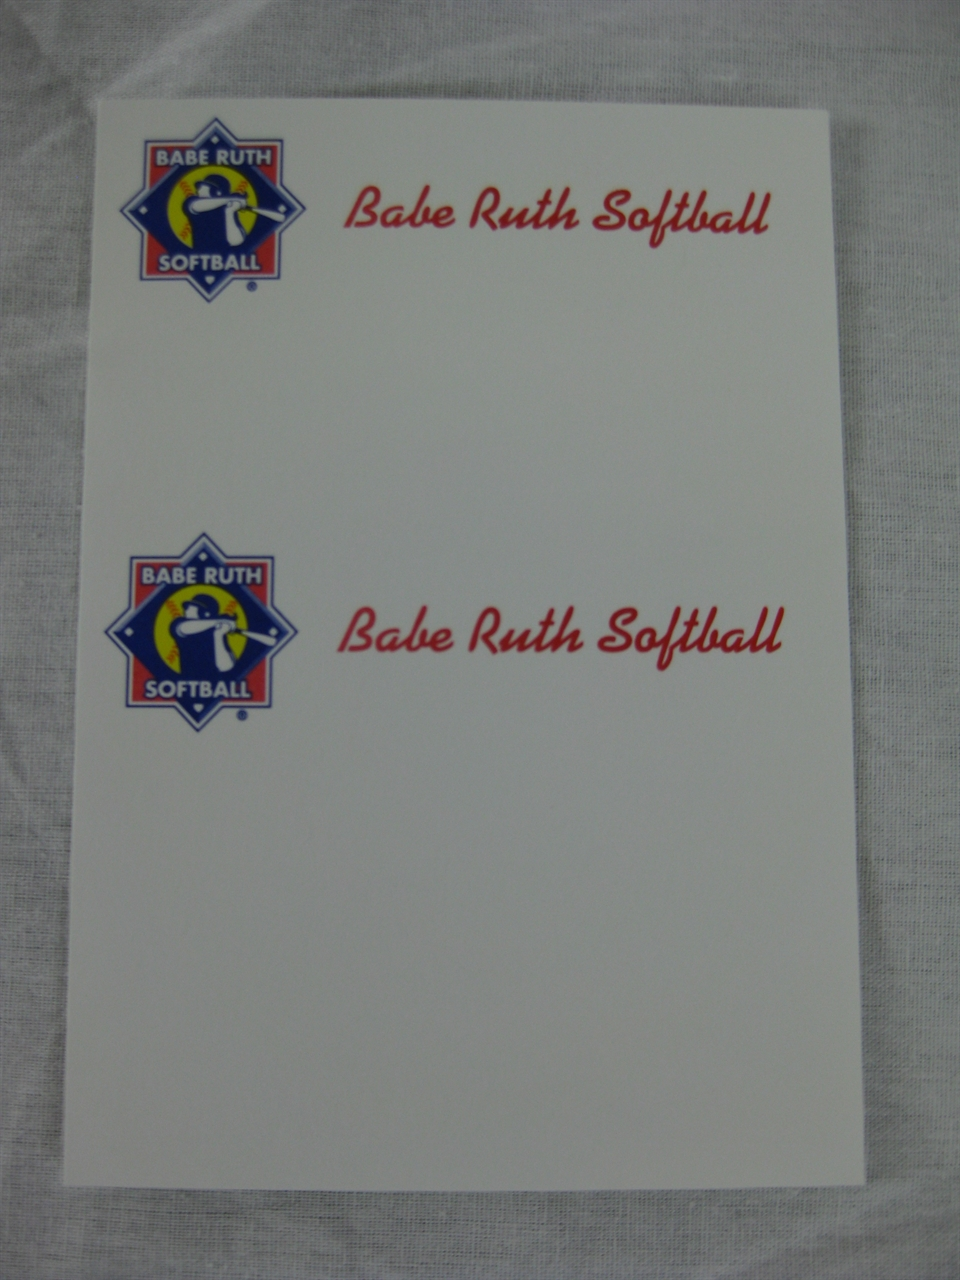 Babe ruth league online store babe ruth softball business cards picture of babe ruth softball business cards colourmoves